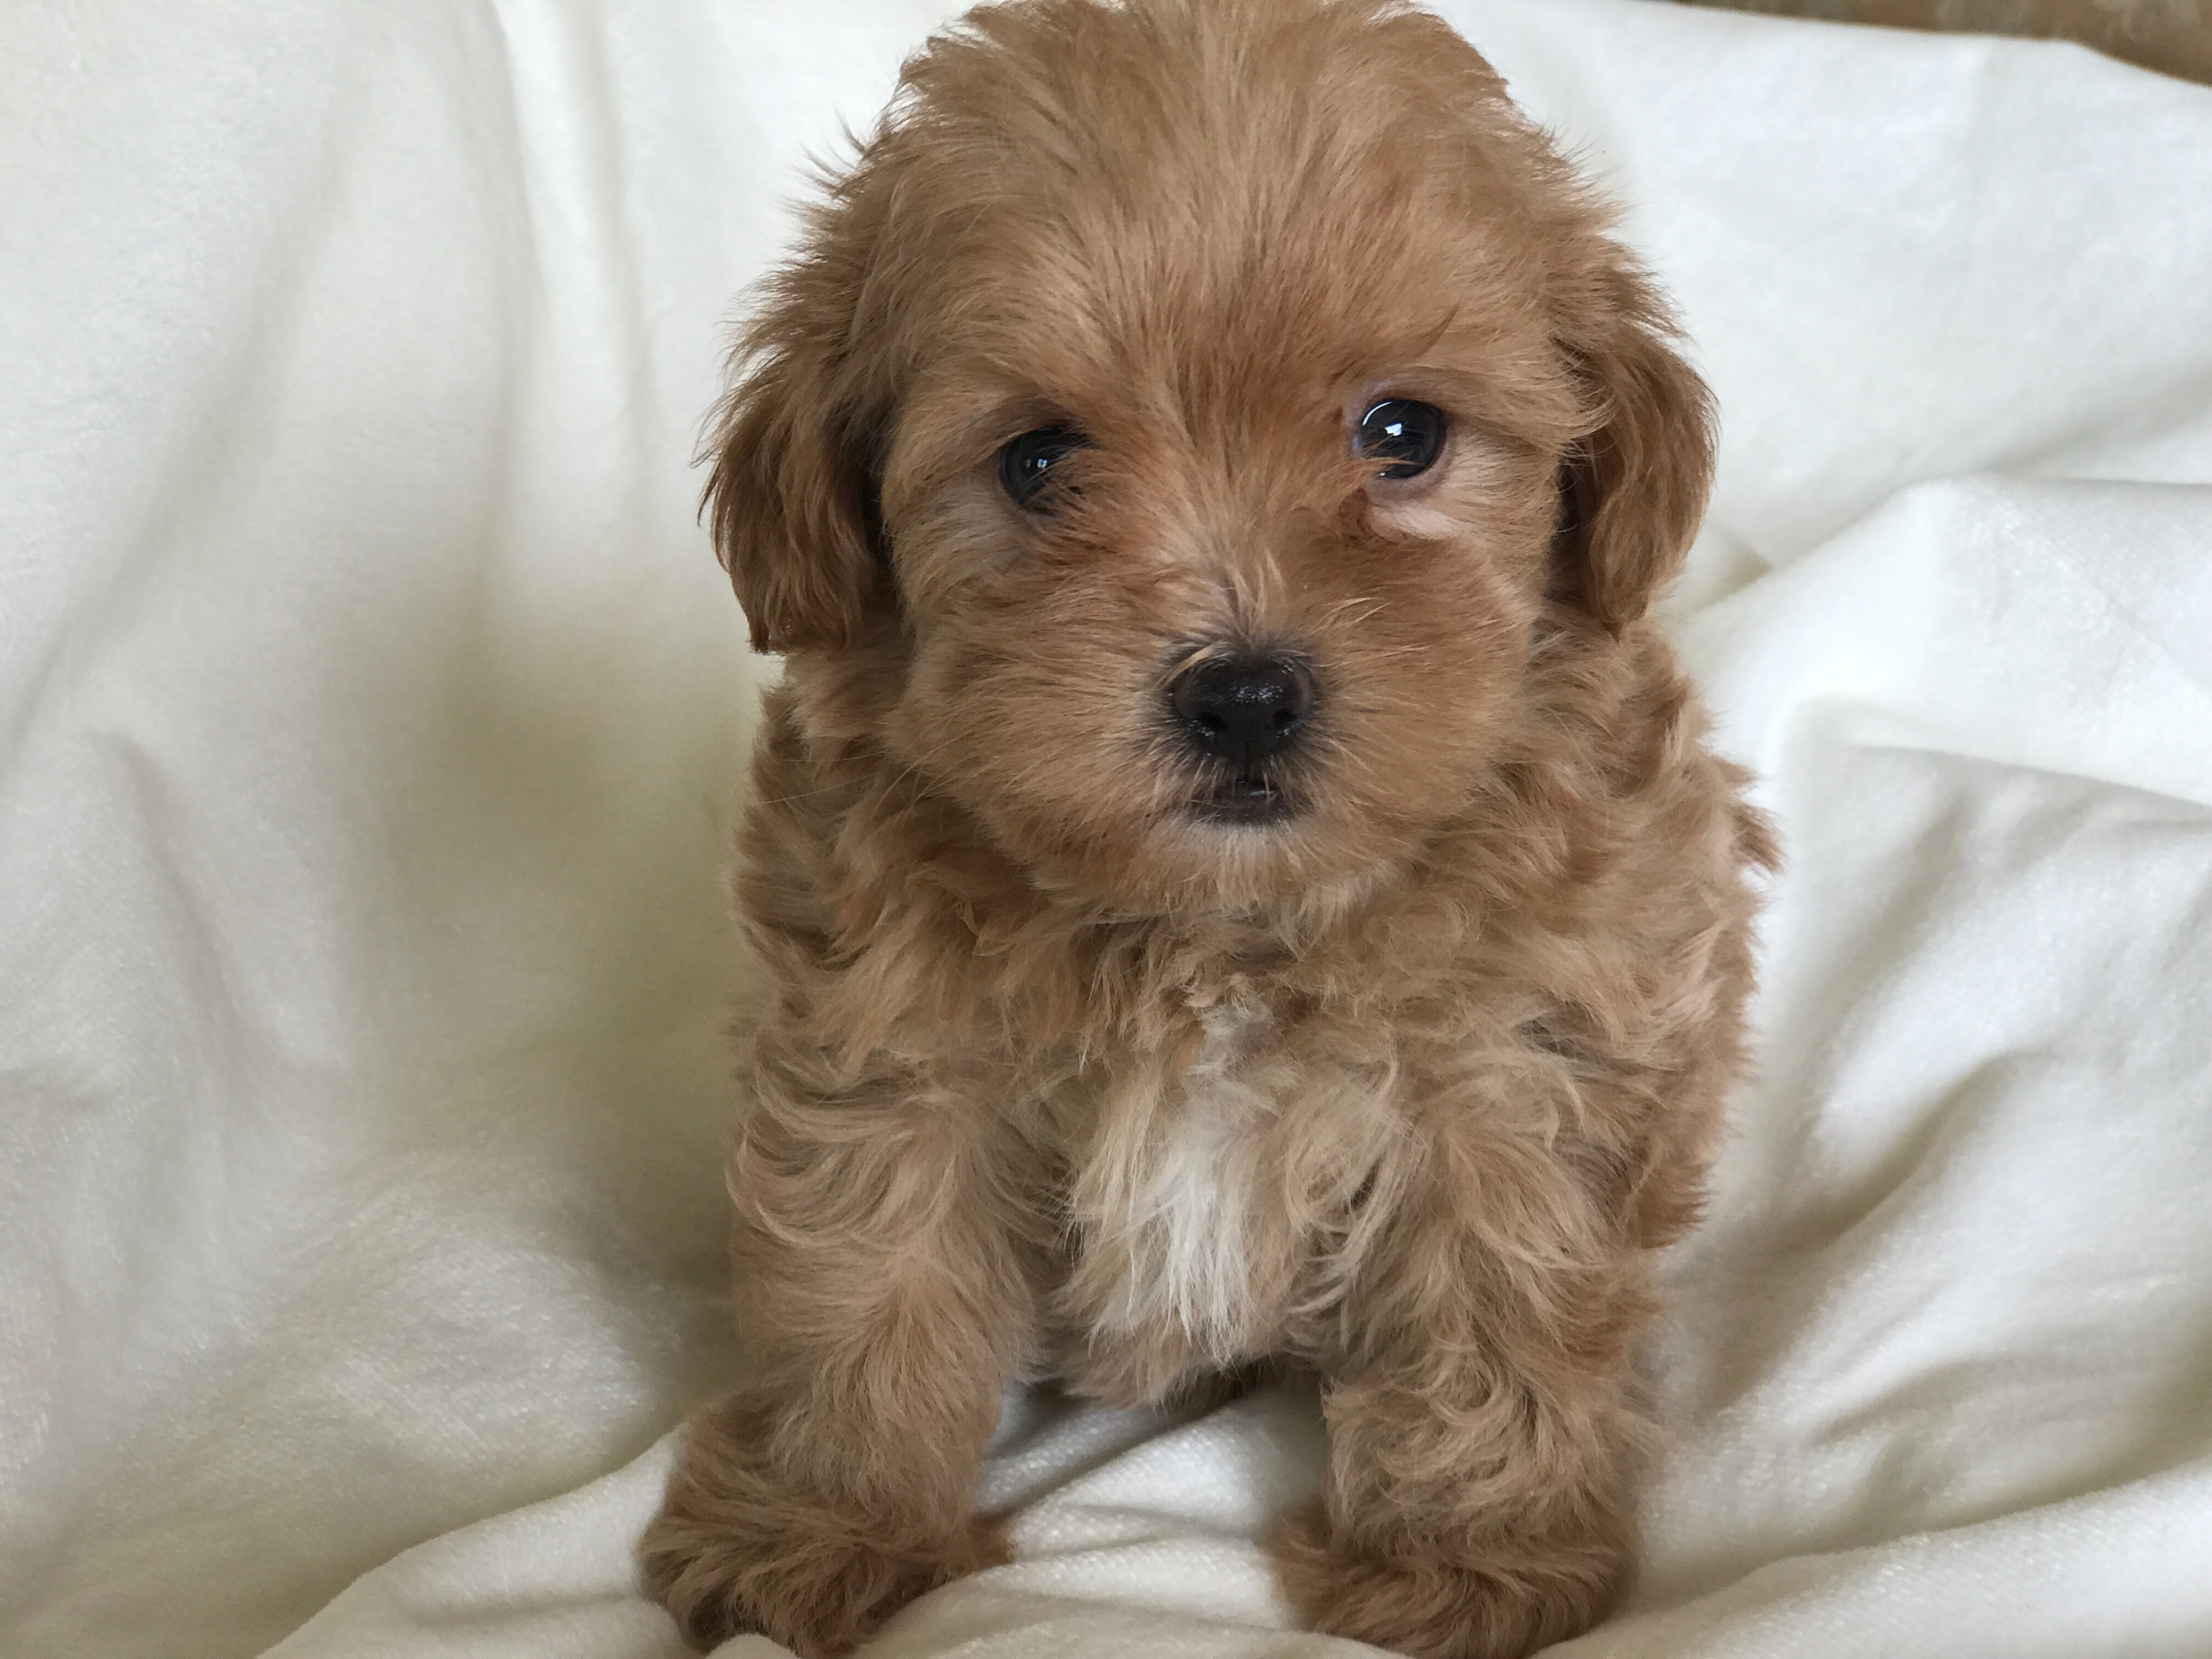 RED MALTIPOO PUPPIES  FULL GROWN SIZE 8-9lbs  CURLY FLUFFY HAIR ROUND TEDDYBEAR FACEHOME RAISE